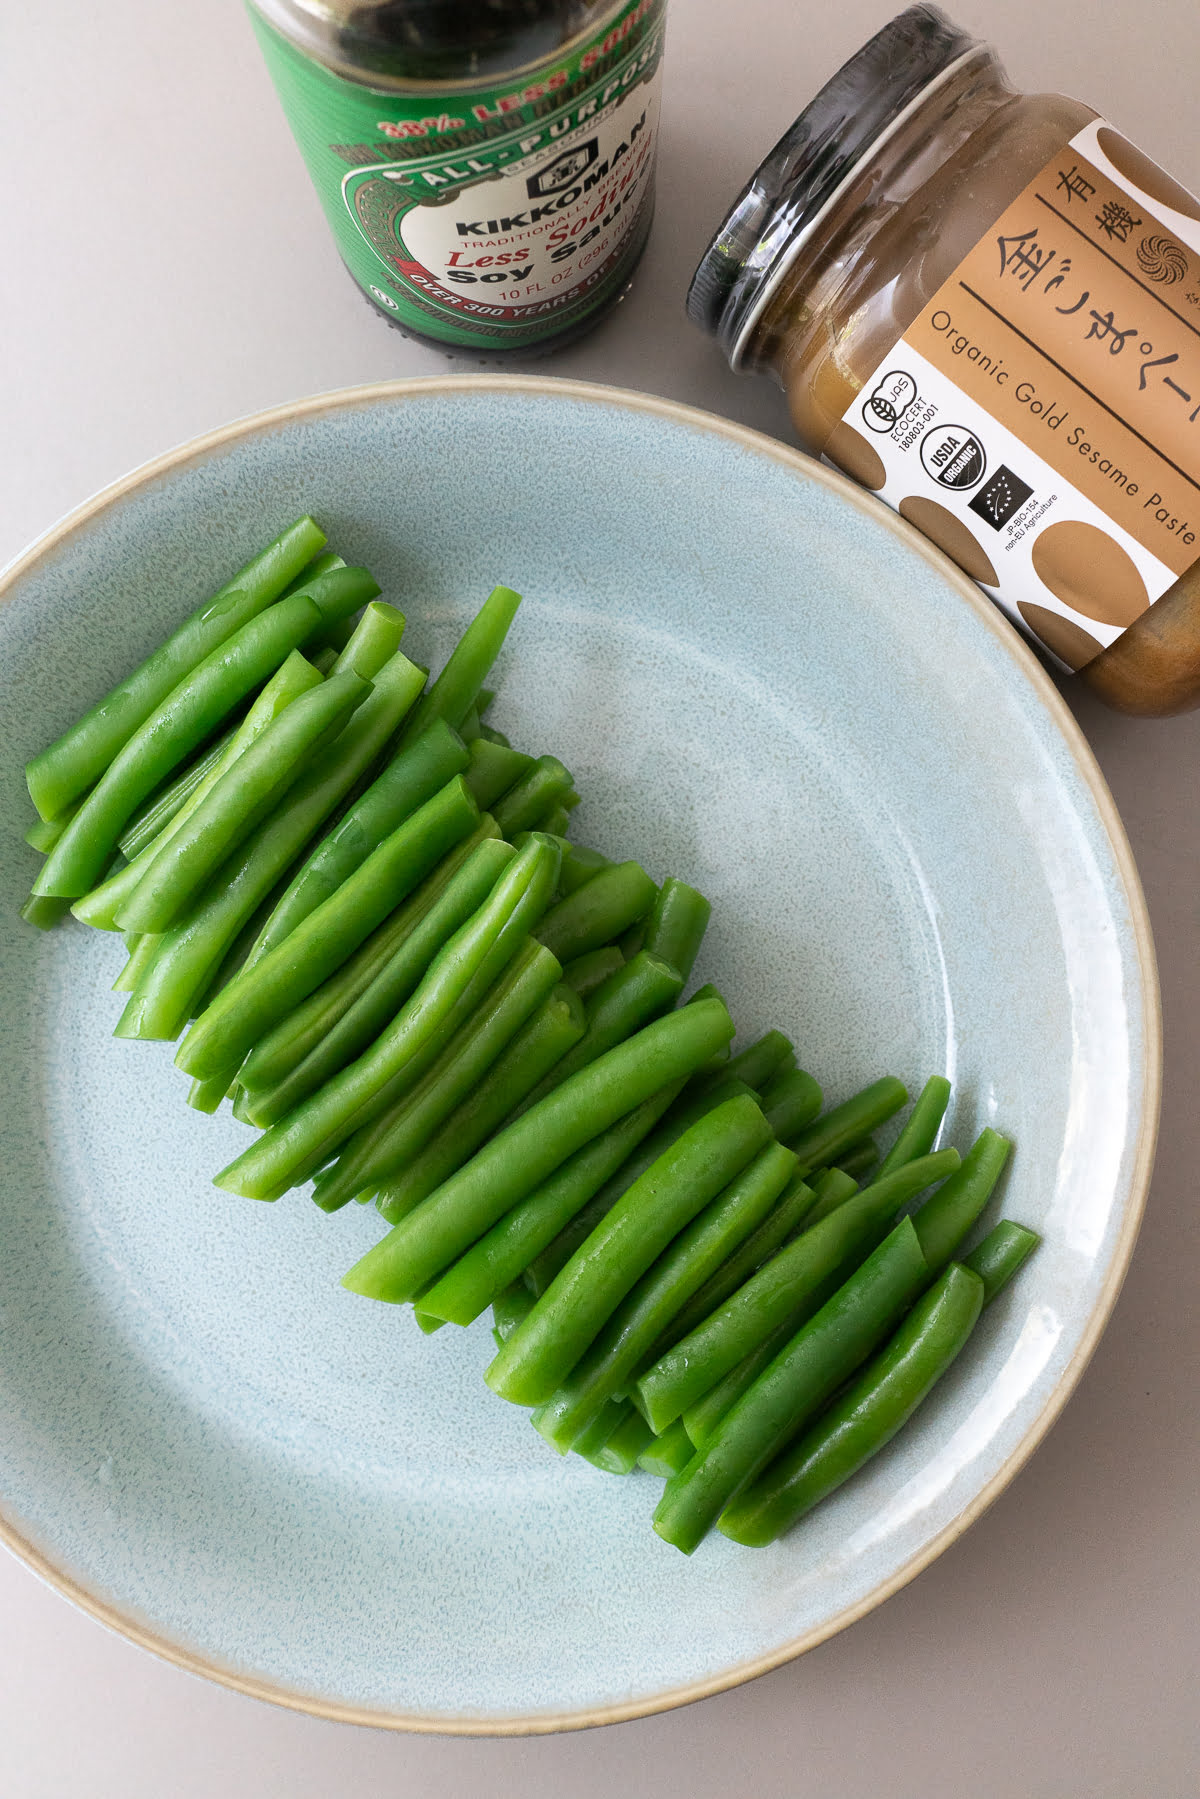 Ingredients for Green Beans with Sesame Dressing (Gomaae).